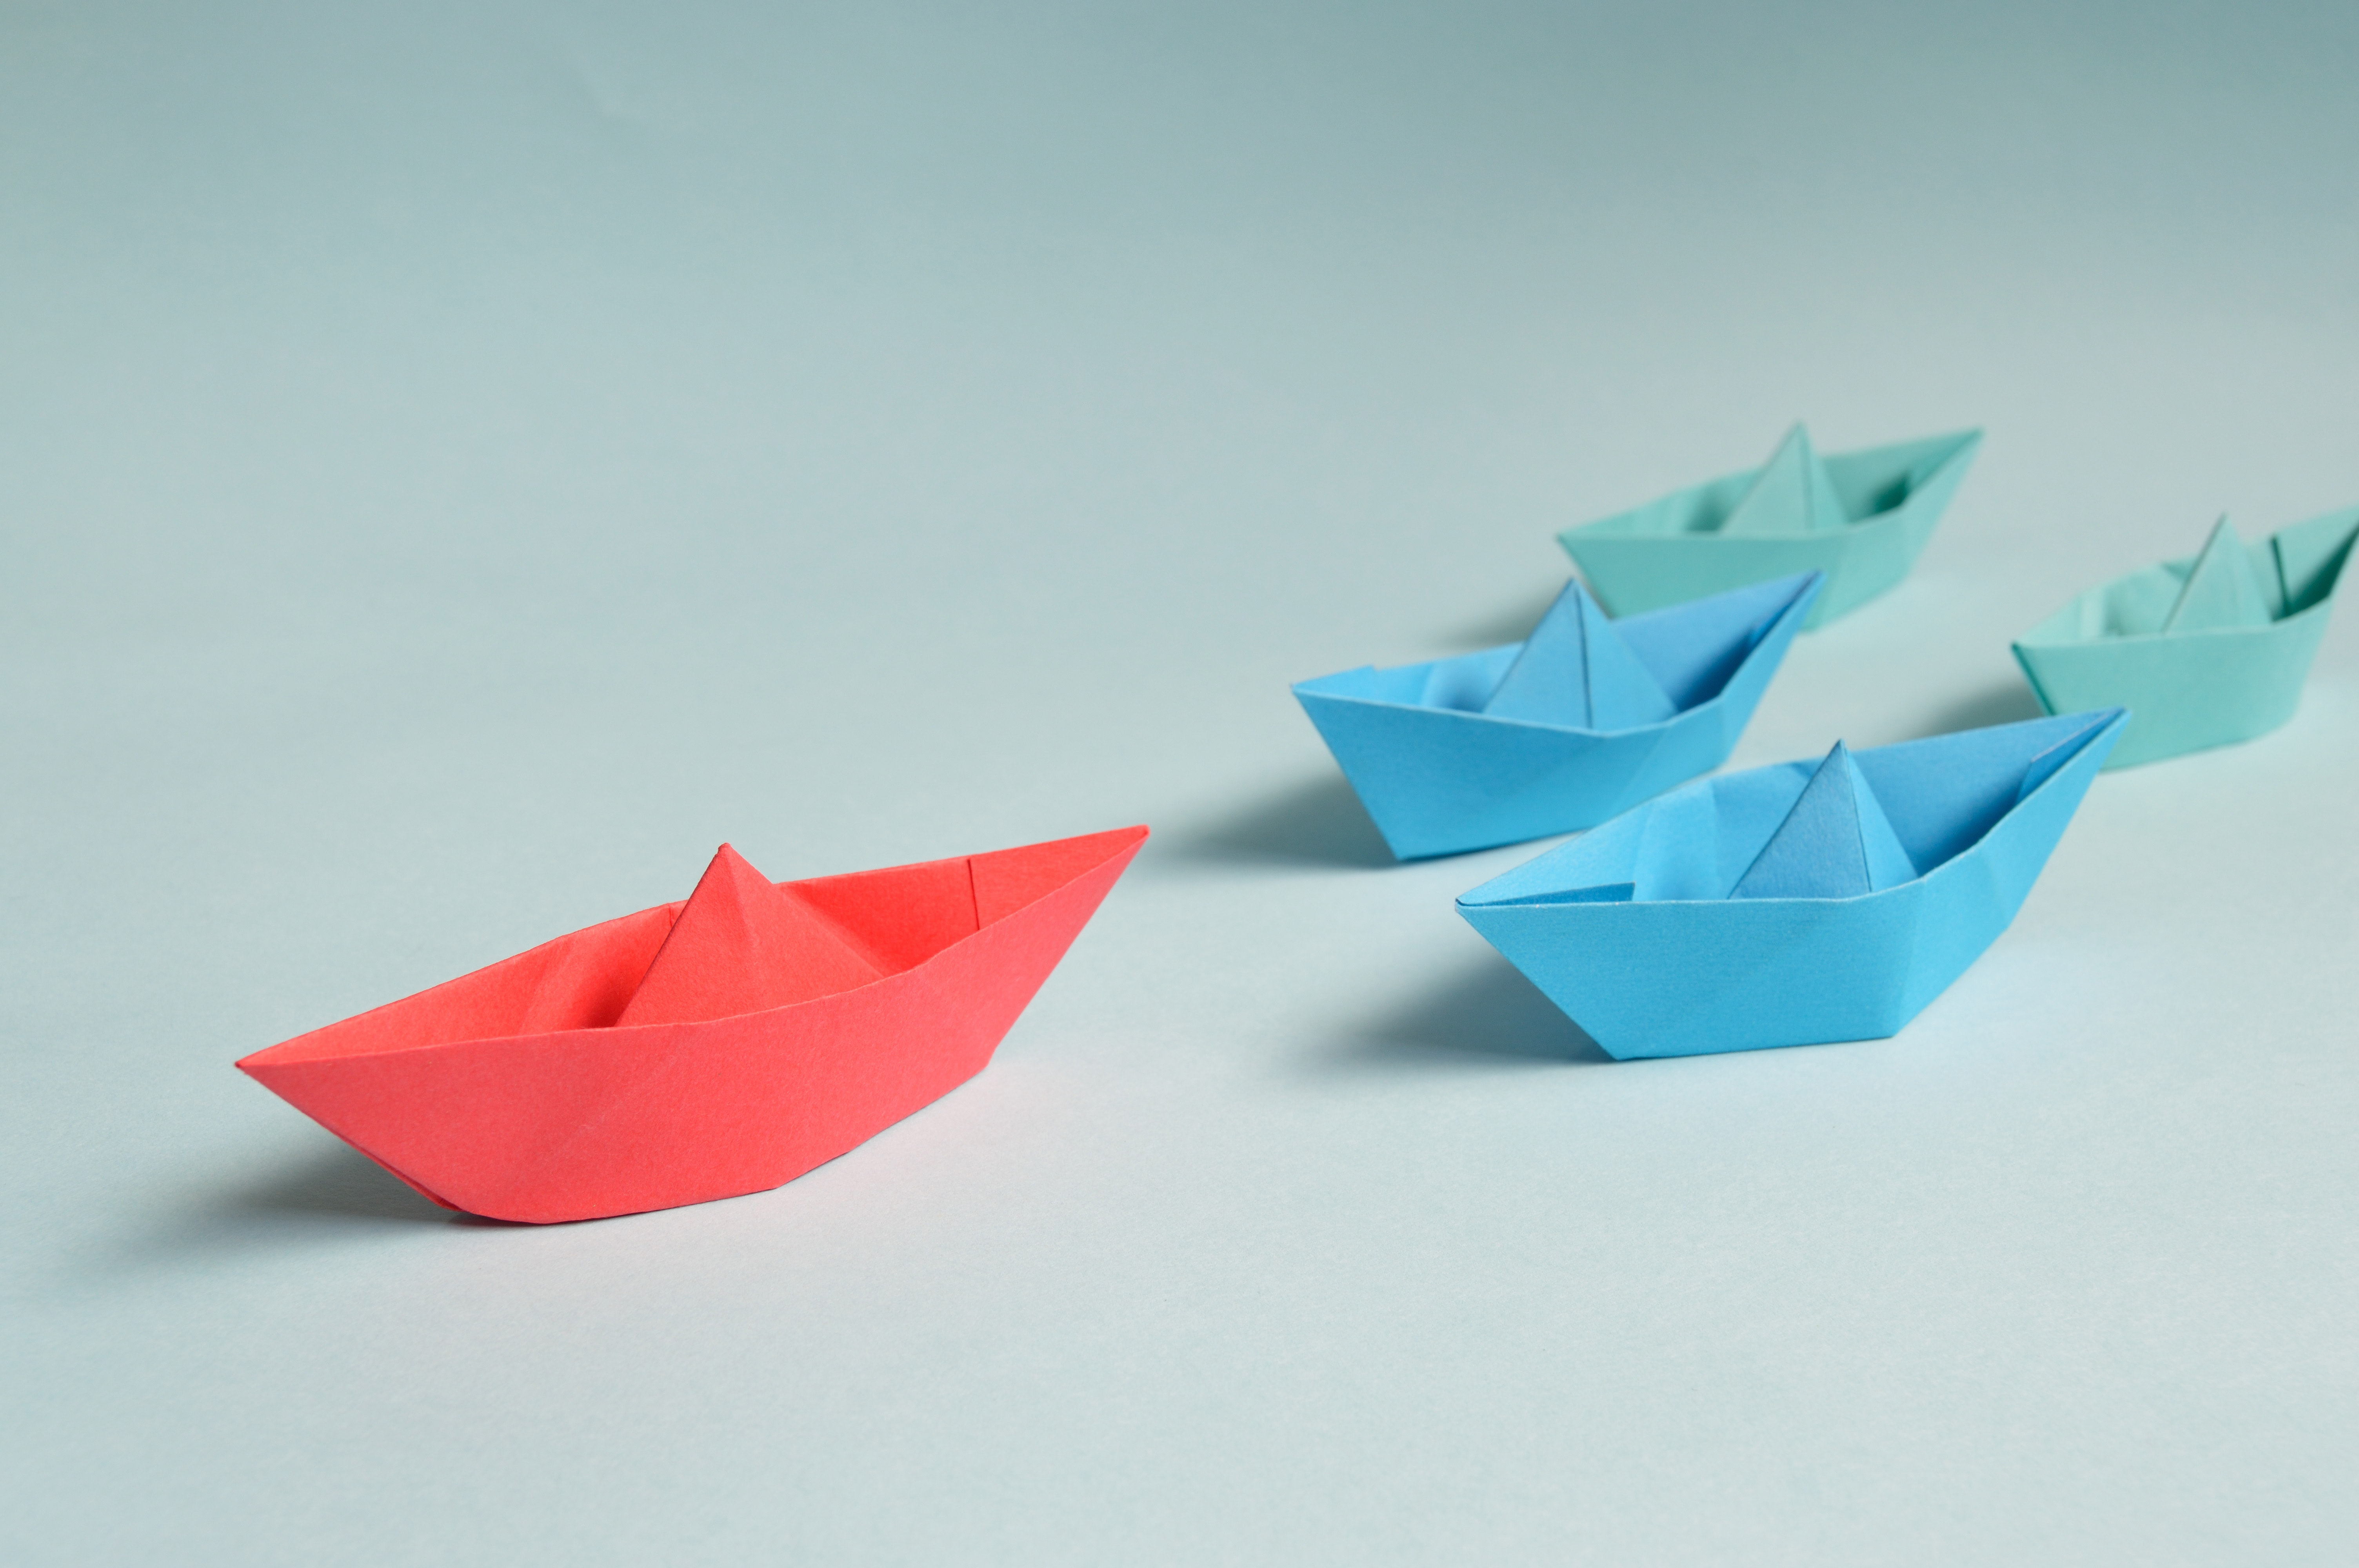 Paper boats on solid surface photo